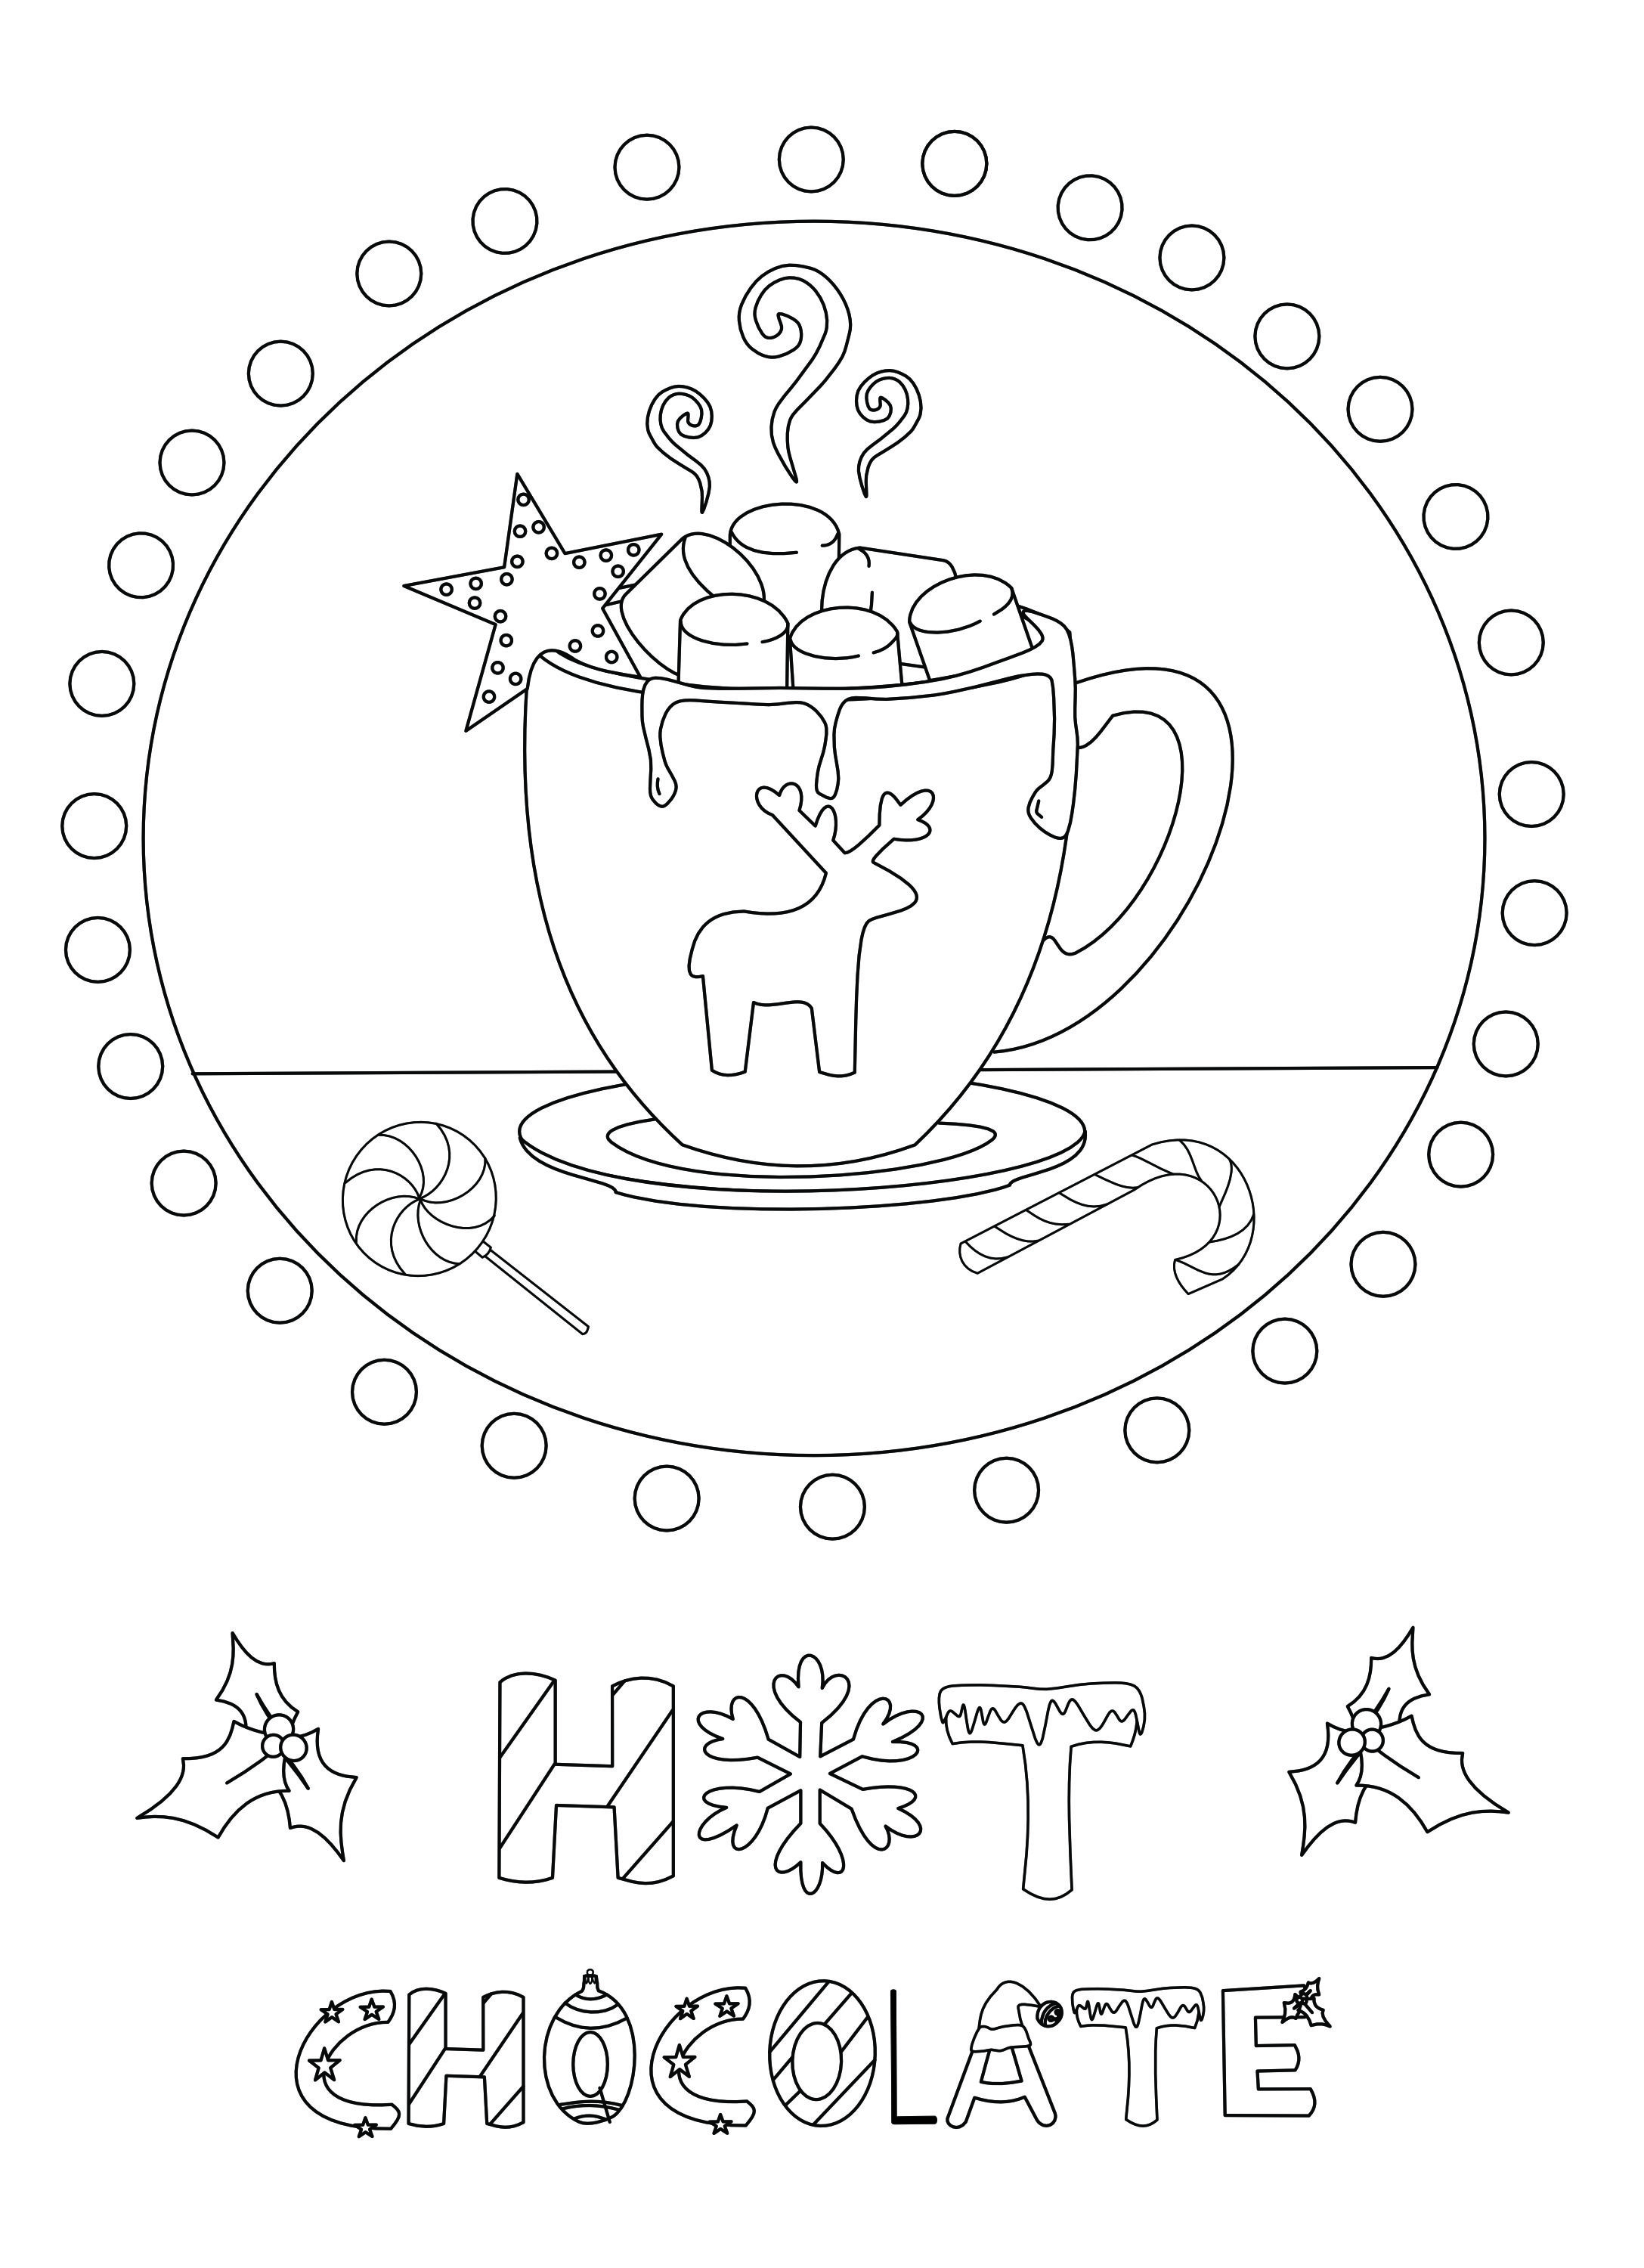 Free, printable Hot Chocolate coloring page from the